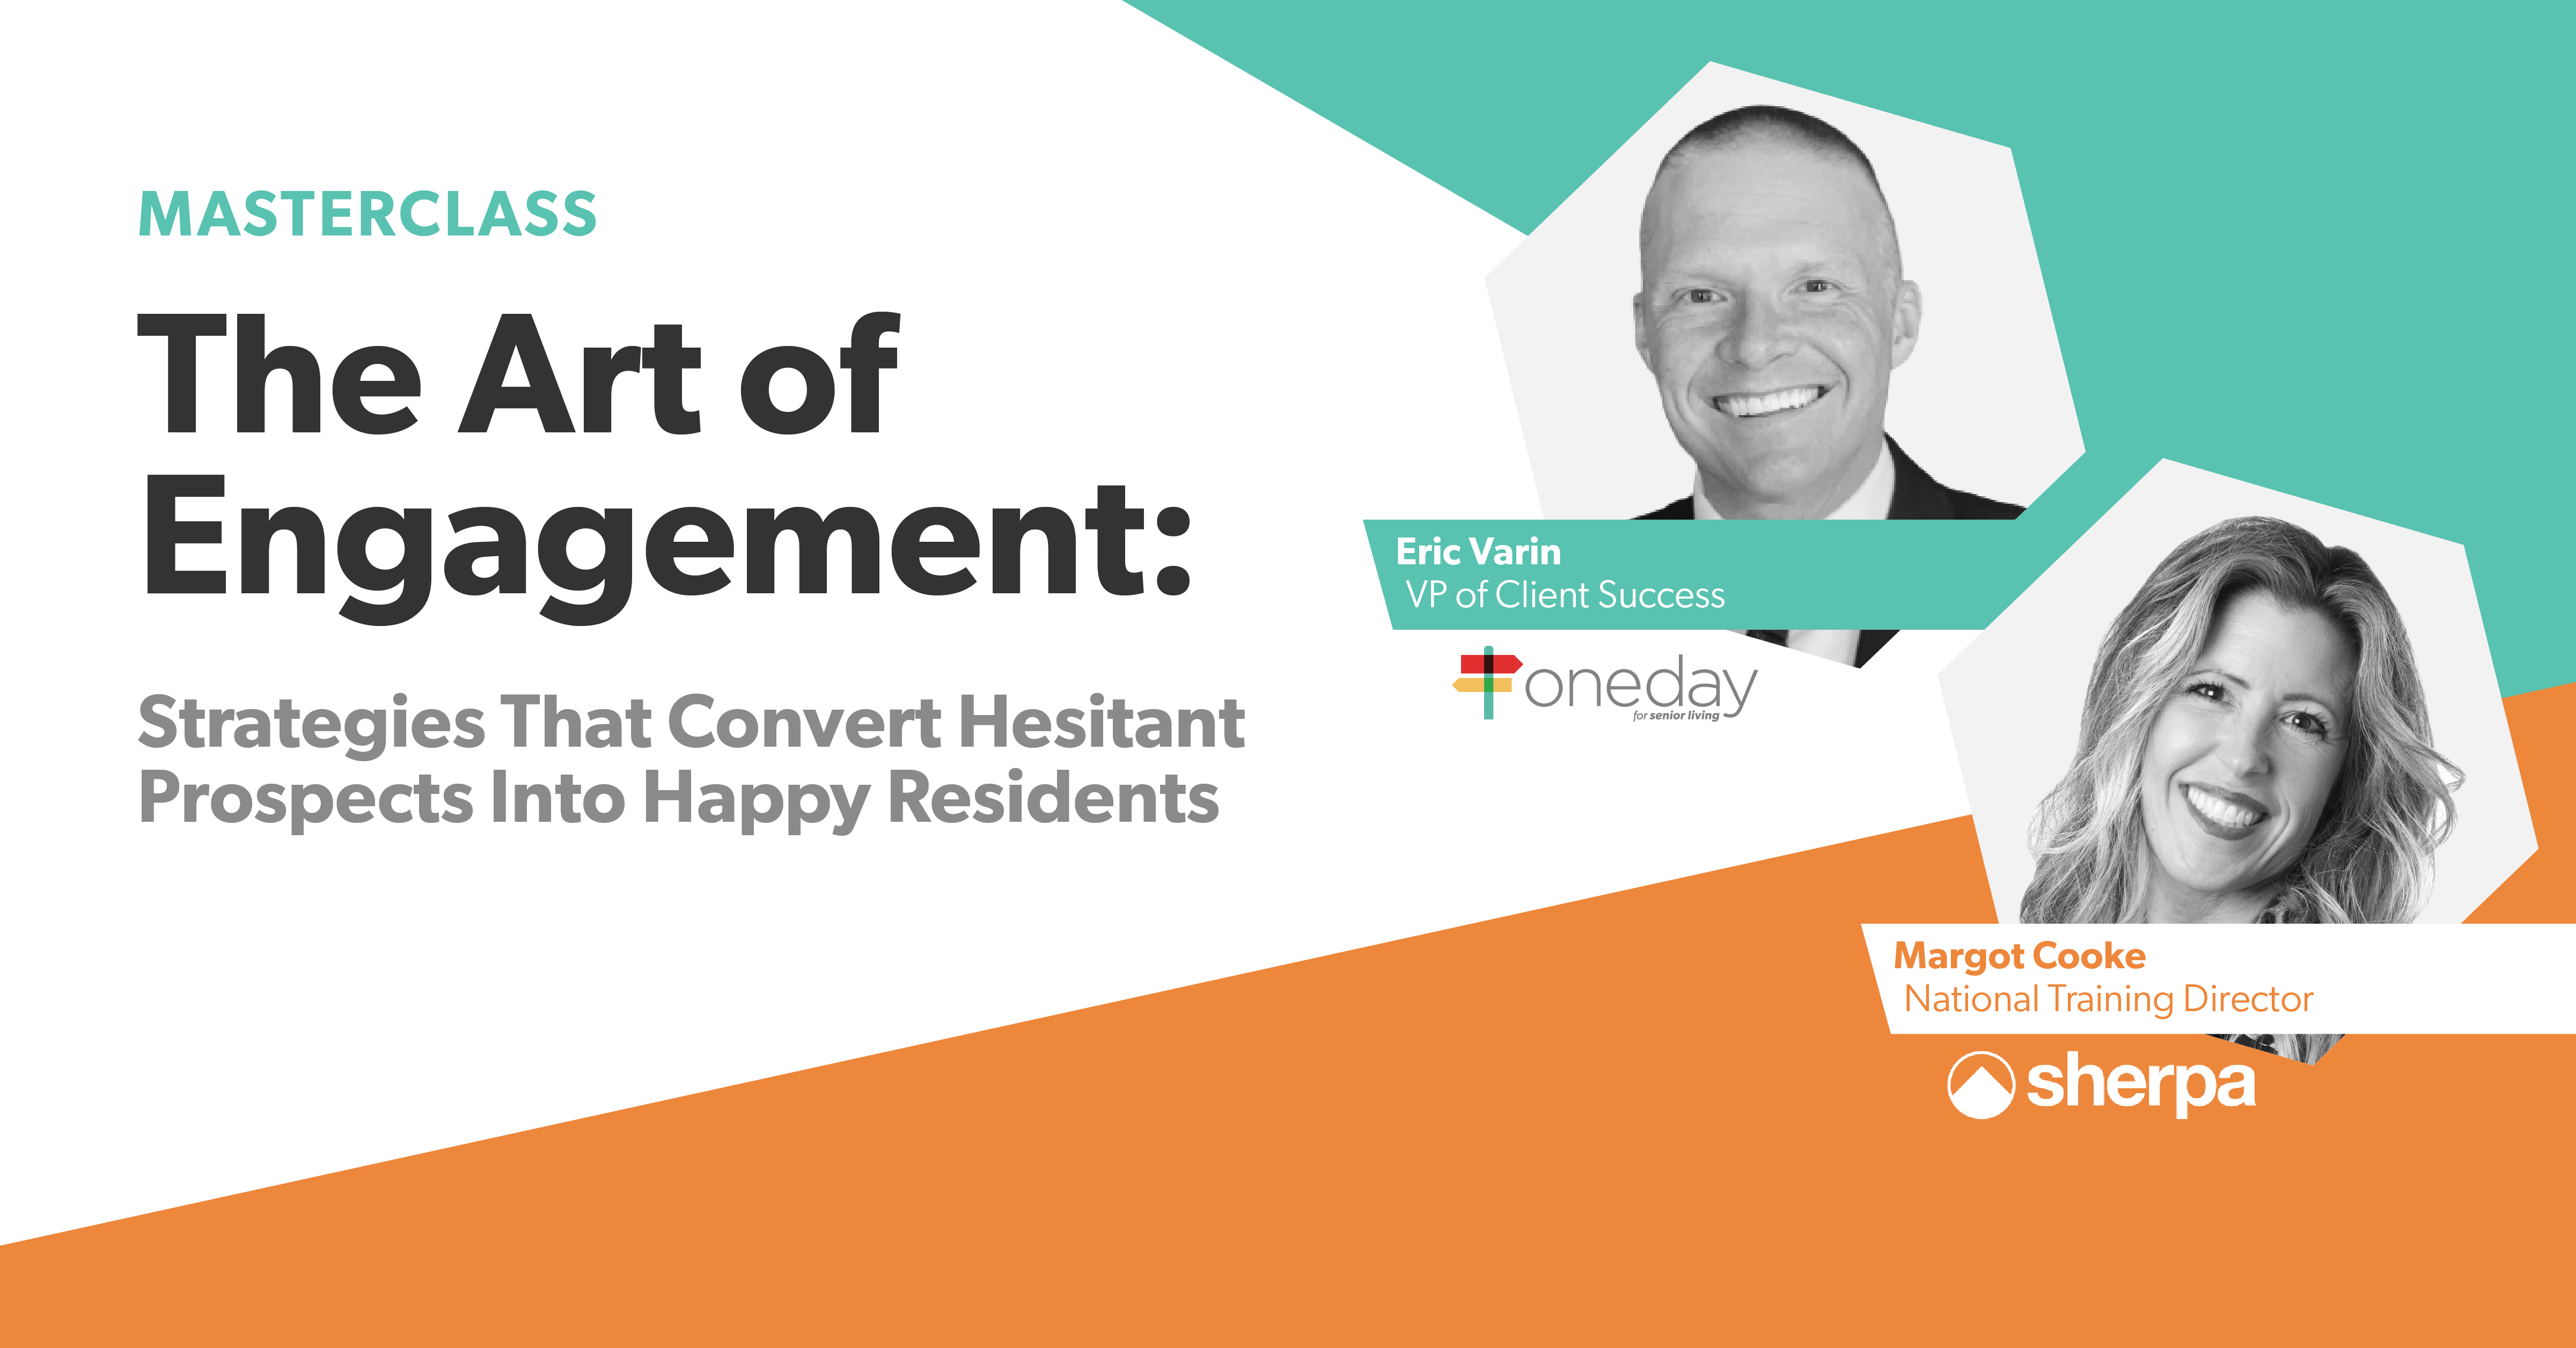 We teamed up with Sherpa to discuss how video is uniquely capable of engaging senior living prospects, along with tips on using it to propel your sales process.